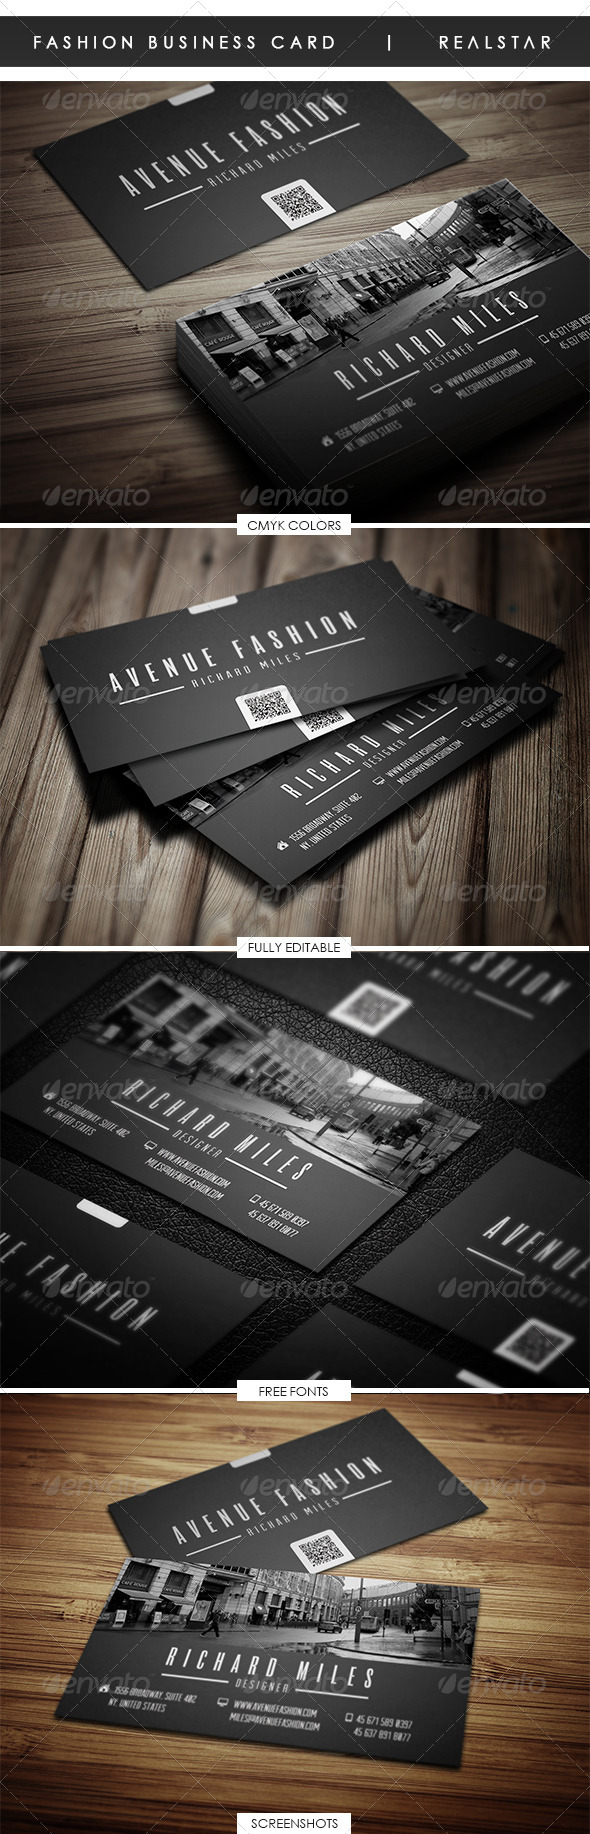 Fashion Business Card - Corporate Business Cards